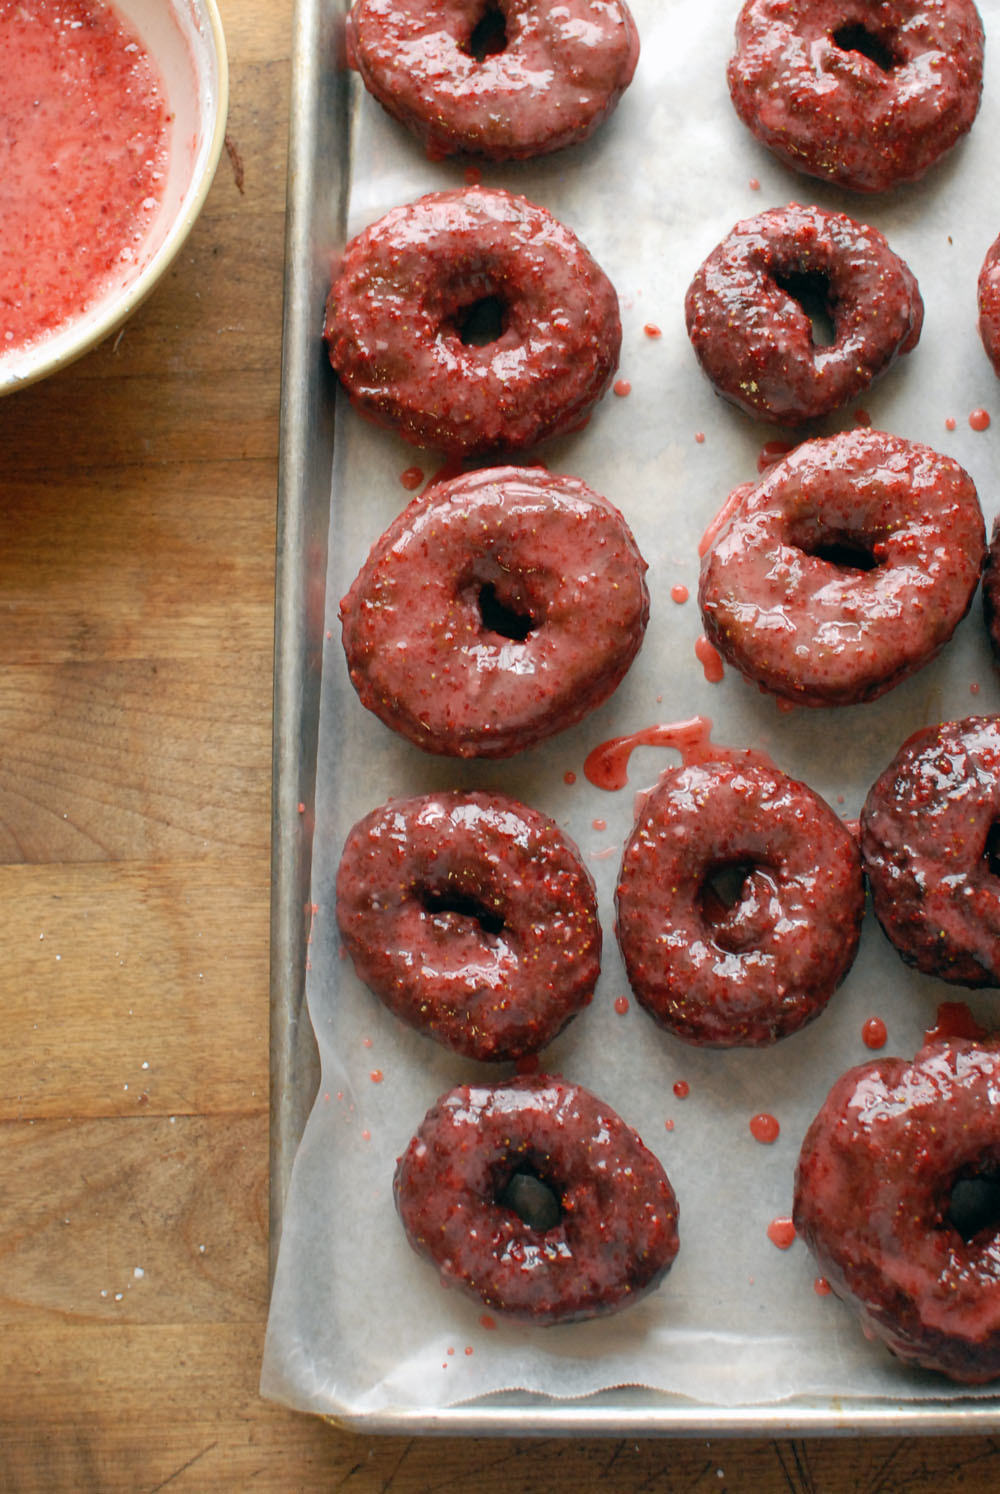 Quick Chocolate Donuts With A Fresh Strawberry Glaze